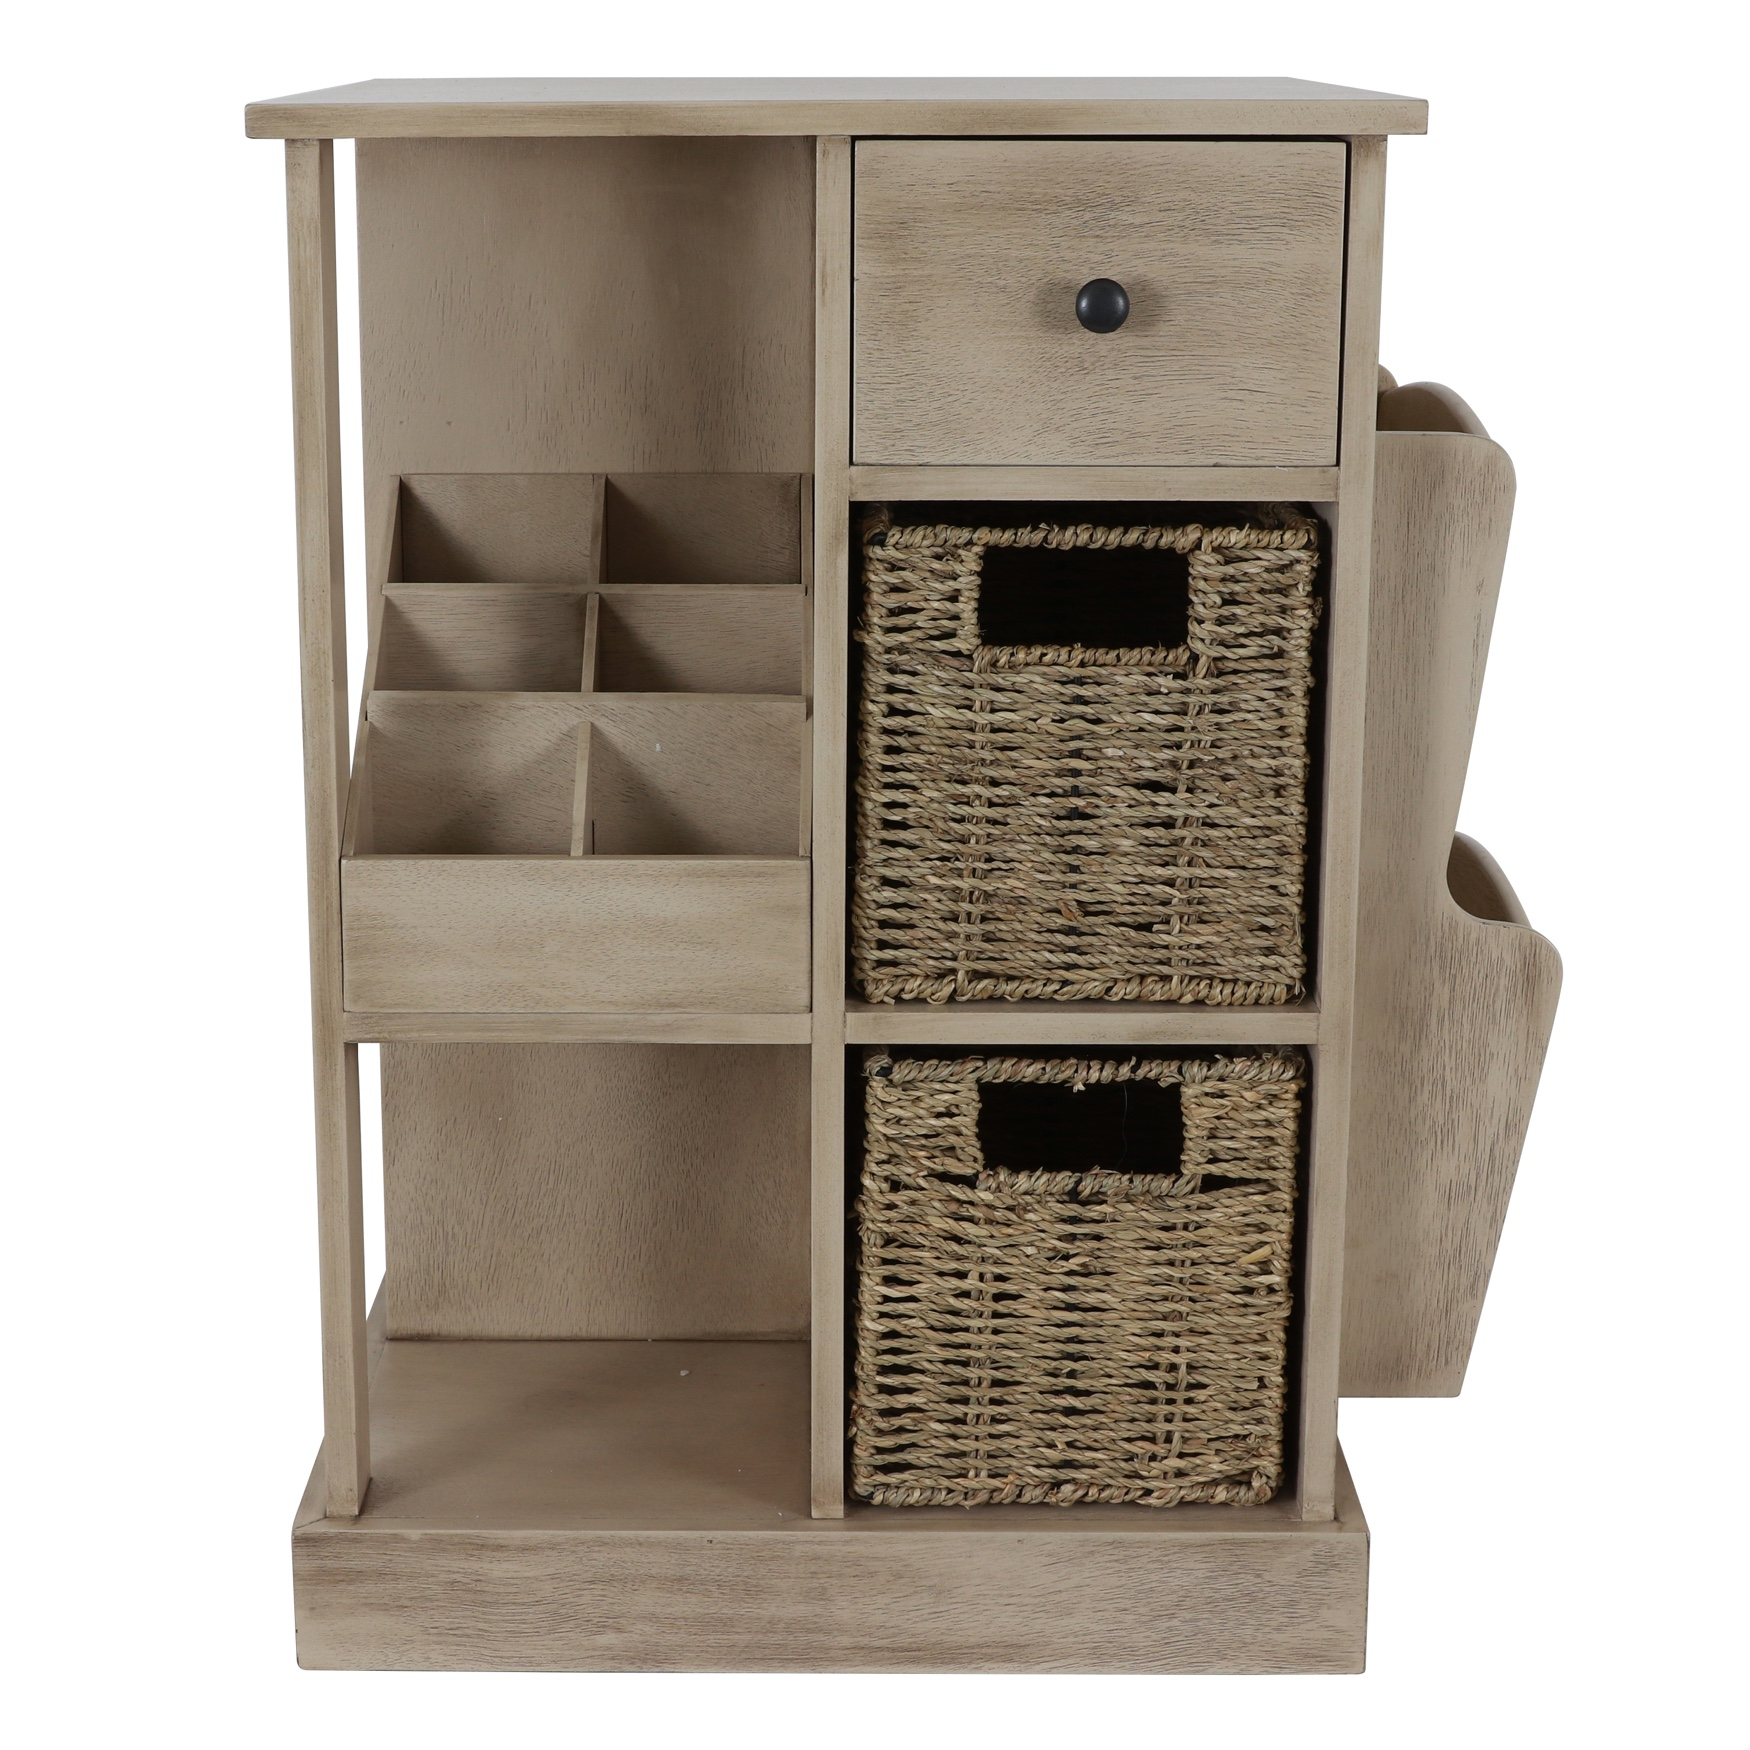 Accent Table with Storage & Shelves by J. Hunt, SAHARA